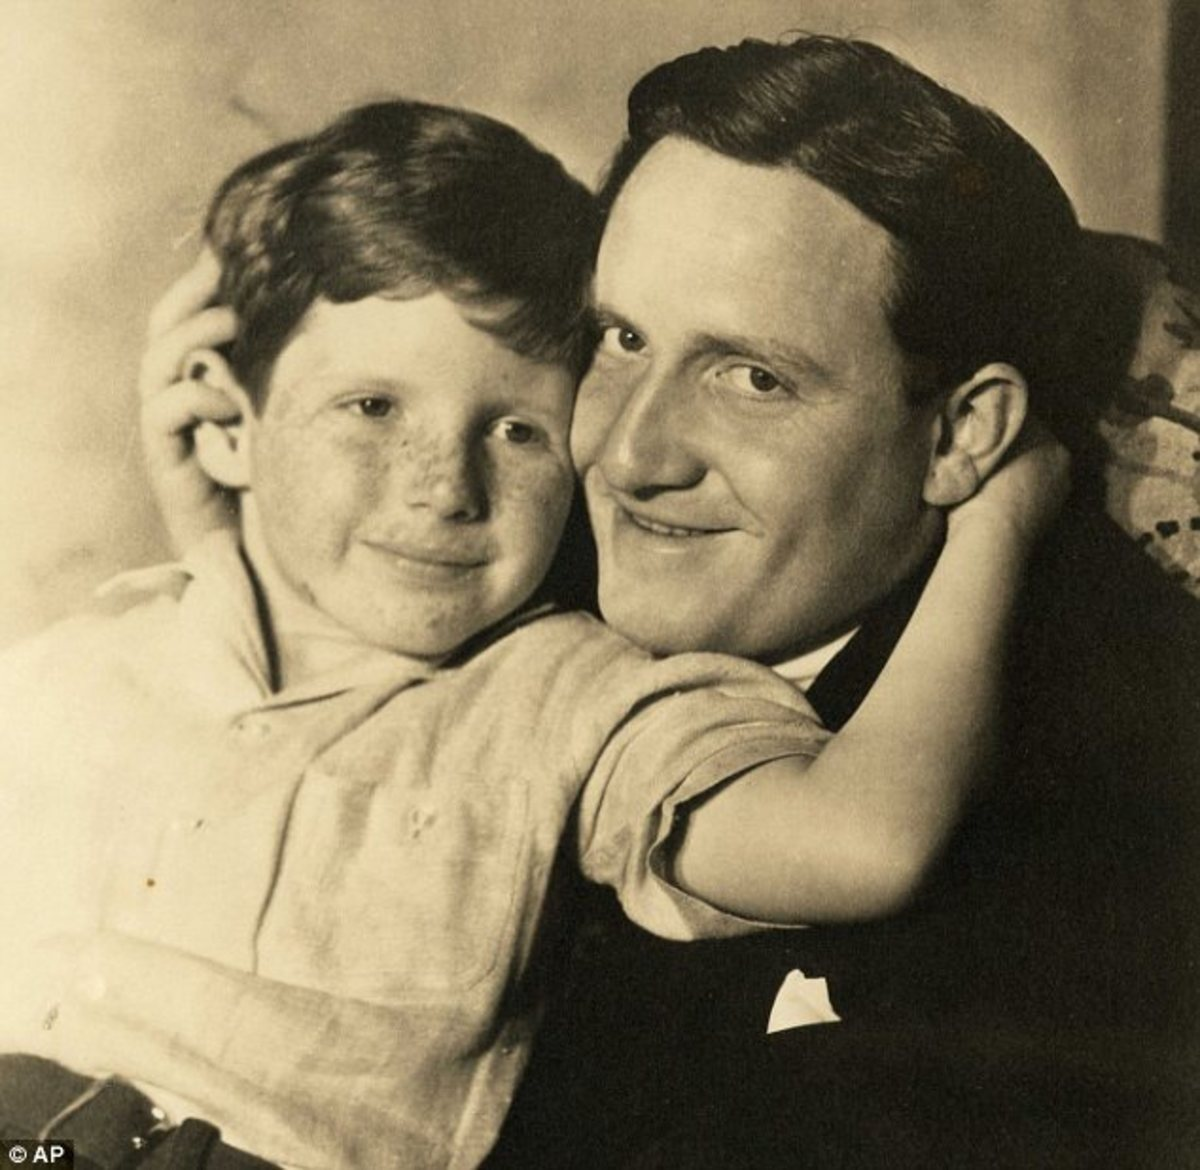 Young John with his father